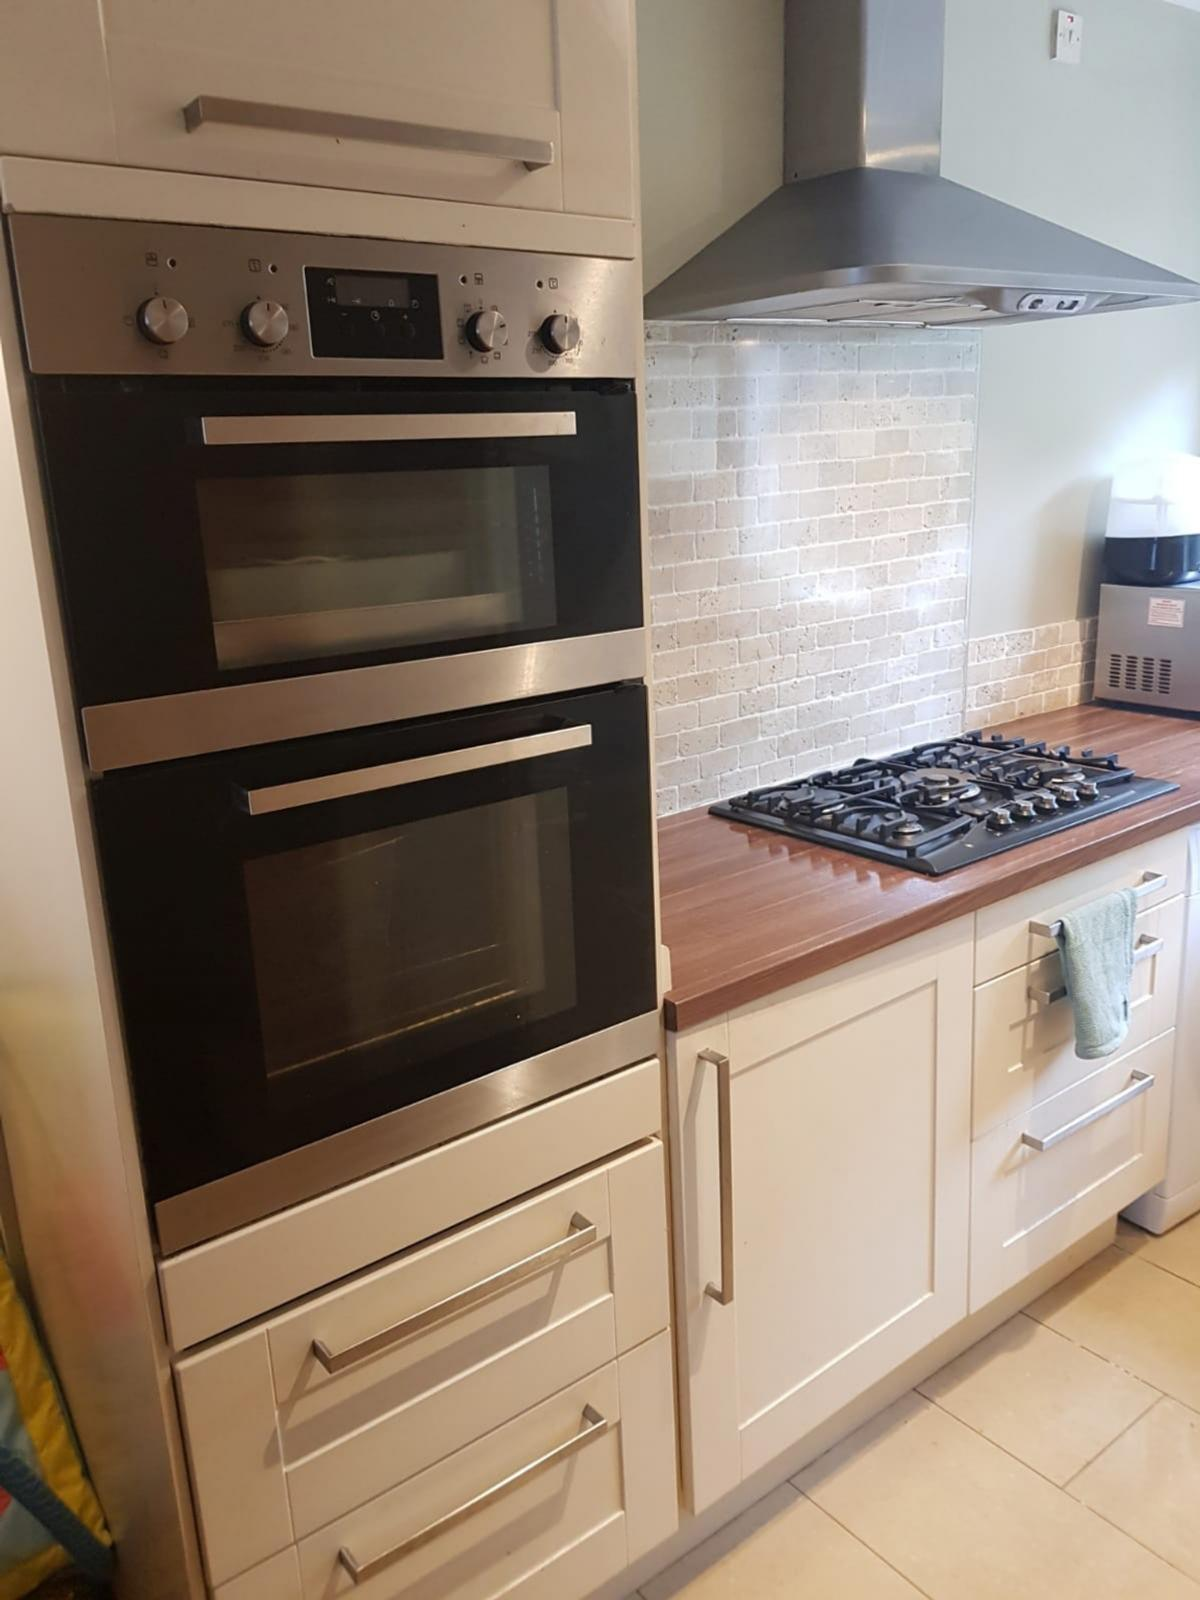 Ikea Kitchen in B33 Birmingham for £400.00 for sale - Shpock